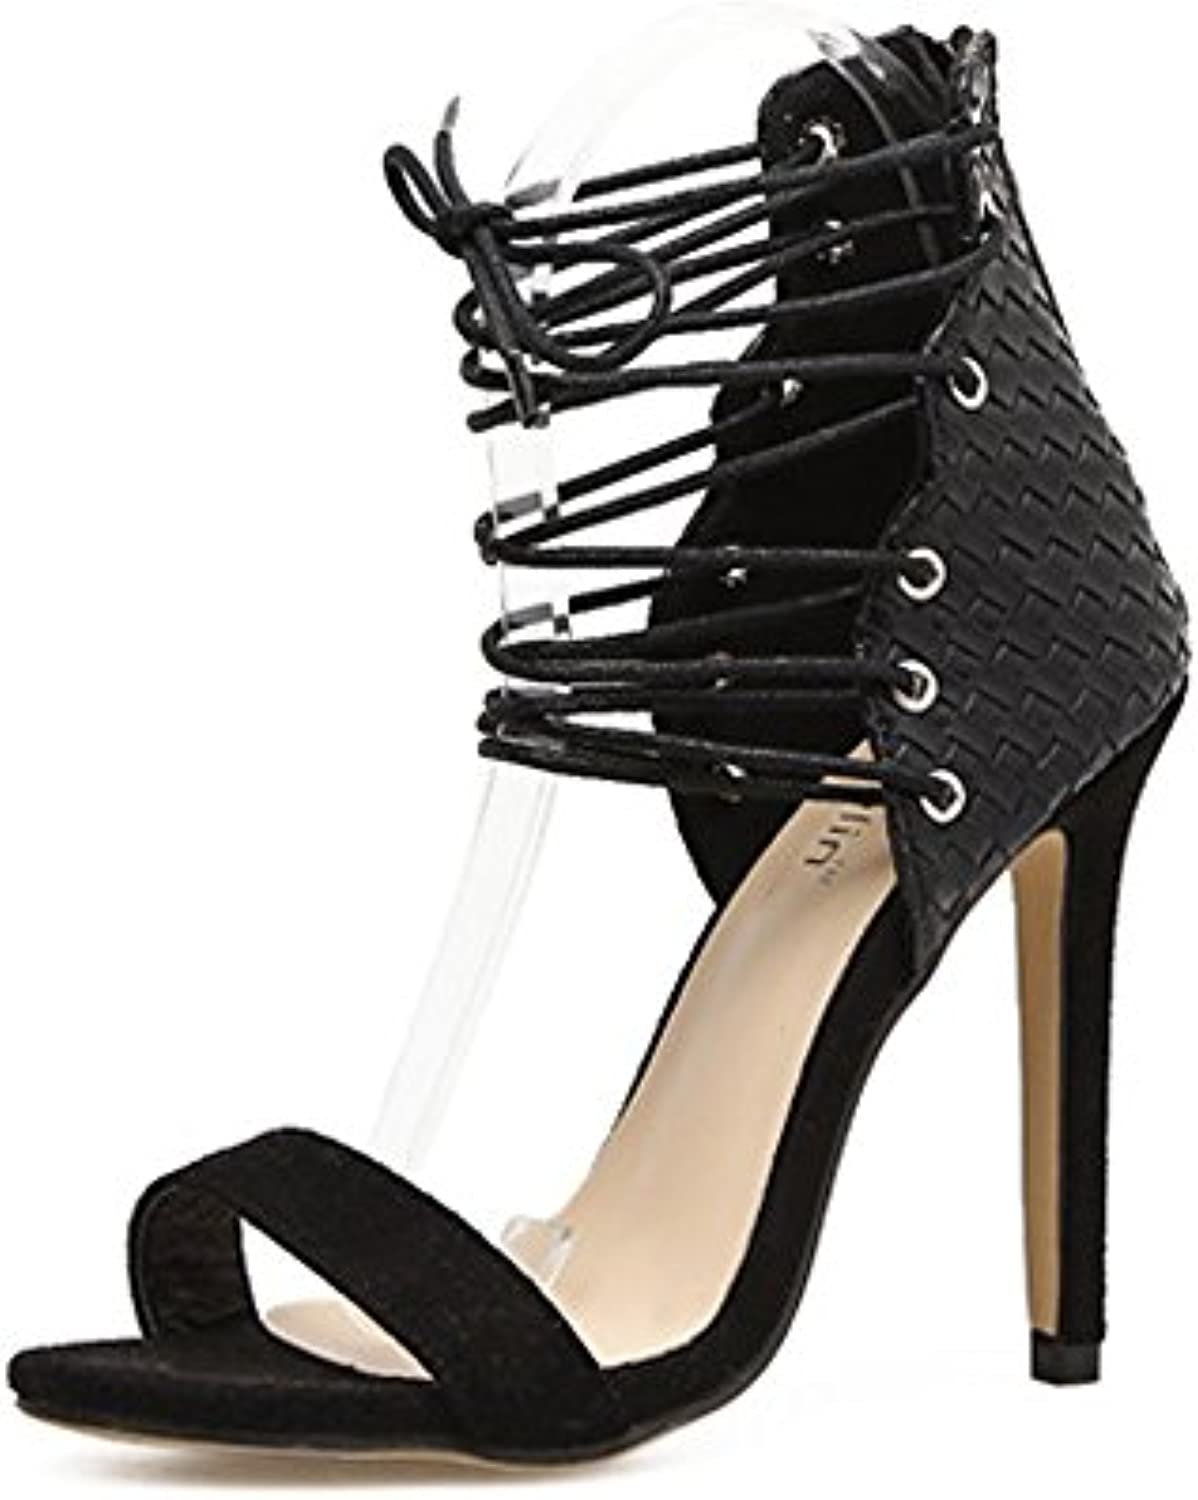 GAOLIXIA Frauen Open Toe Cross Back-Strap Leder Sandalen High Heel Party Prom Street Schwarz Blau Optional